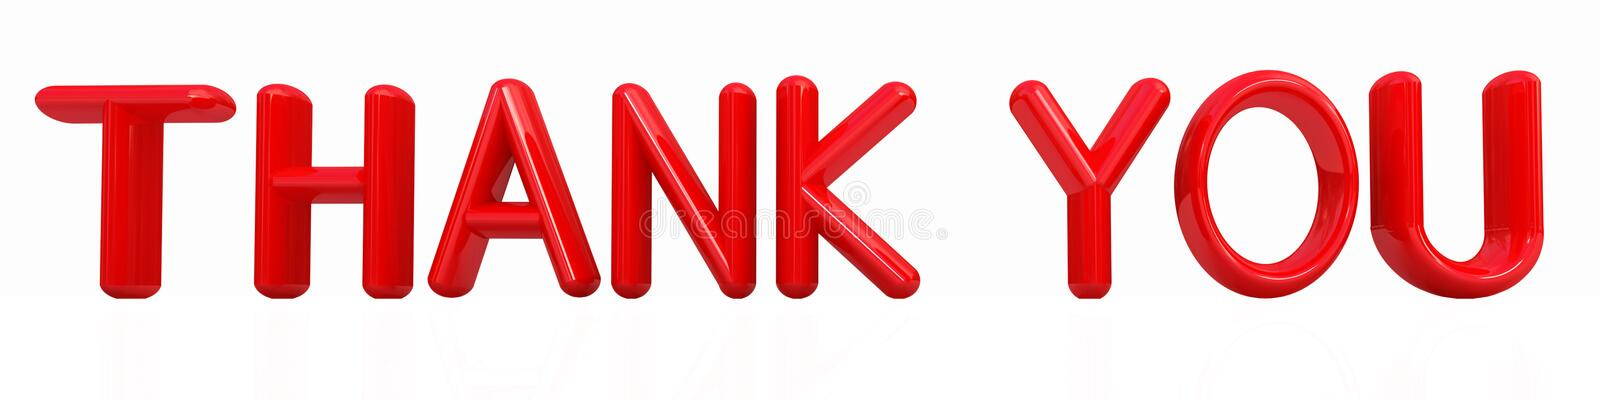 Download Thank you 3d red text stock illustration. Image of illustration - 23171260